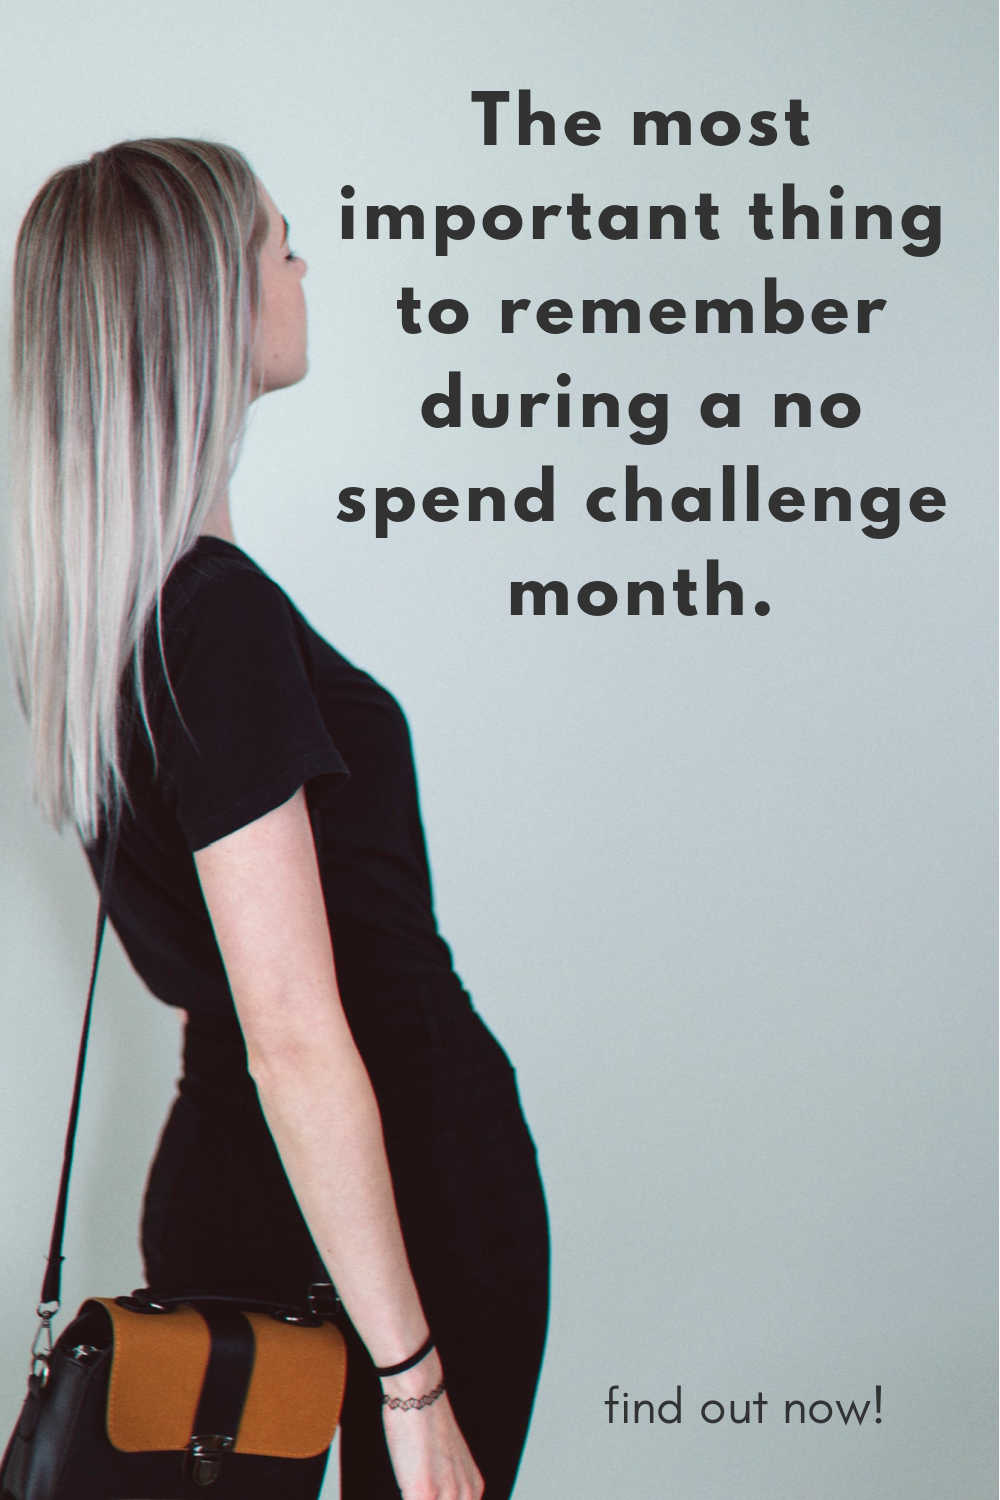 the most important thing to remember during a no spend challenge